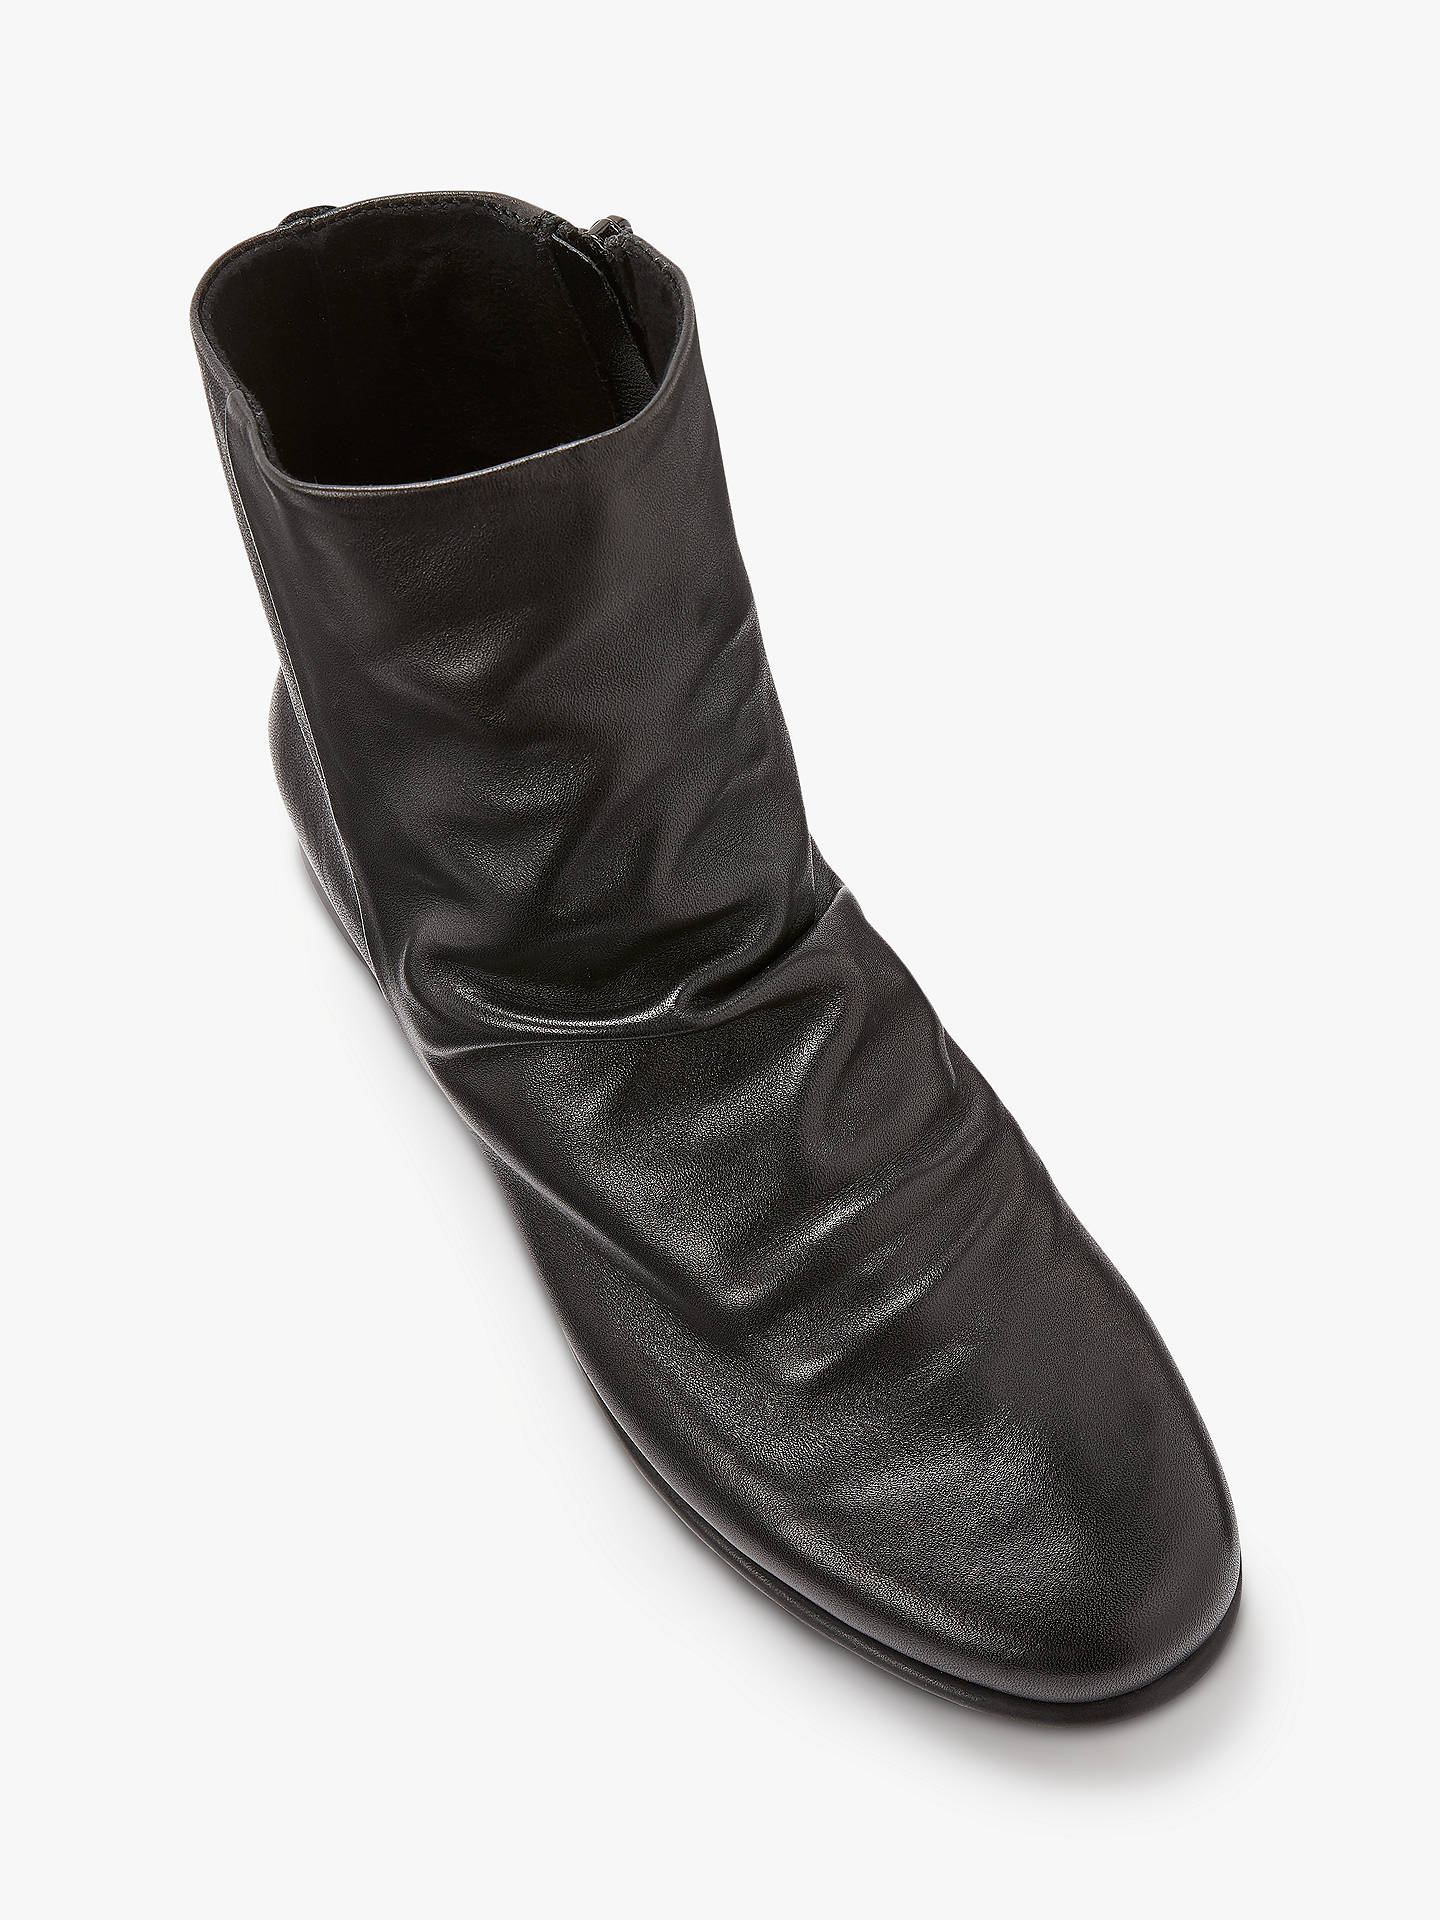 BuyJohn Lewis & Partners Designed for Comfort Peony Boots, Black, 6 Online at johnlewis.com